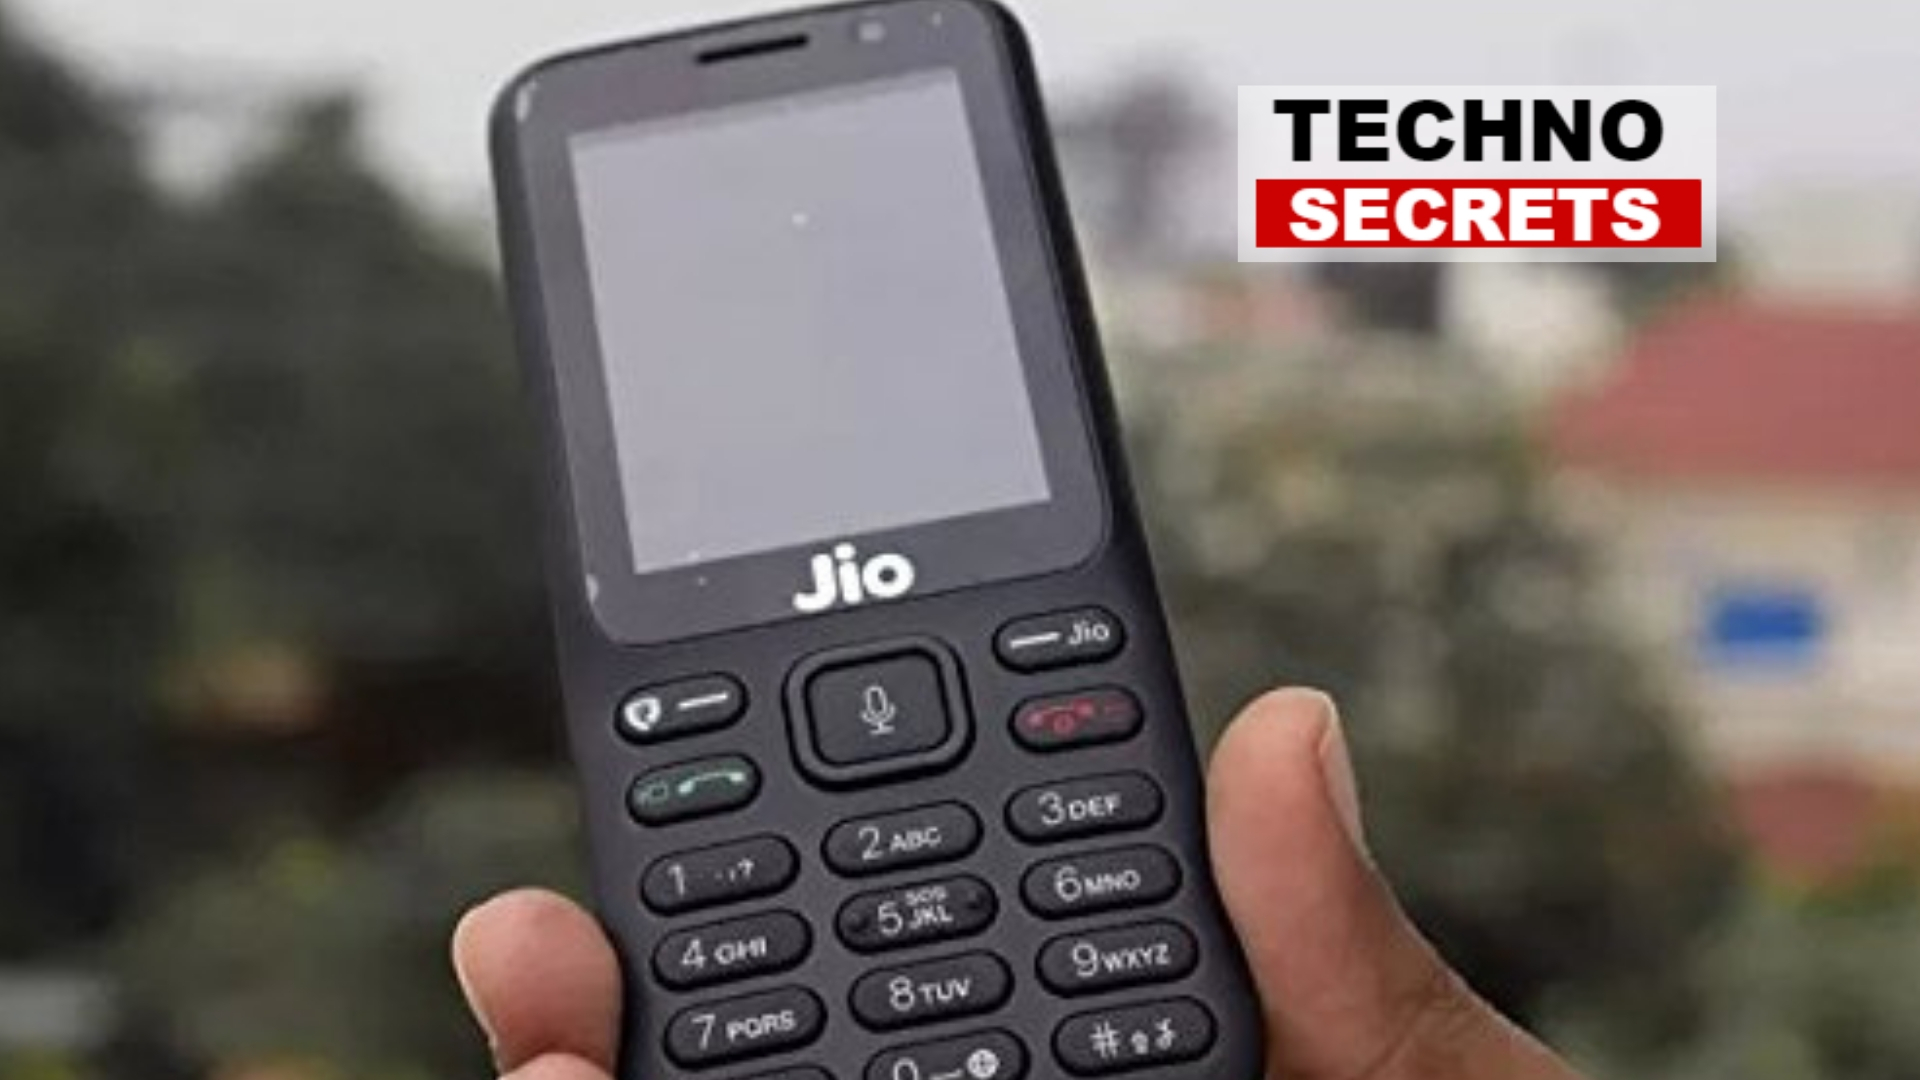 Jio Plans Offers Unlimited Calls, SMS, And Longer Data For JioPhone